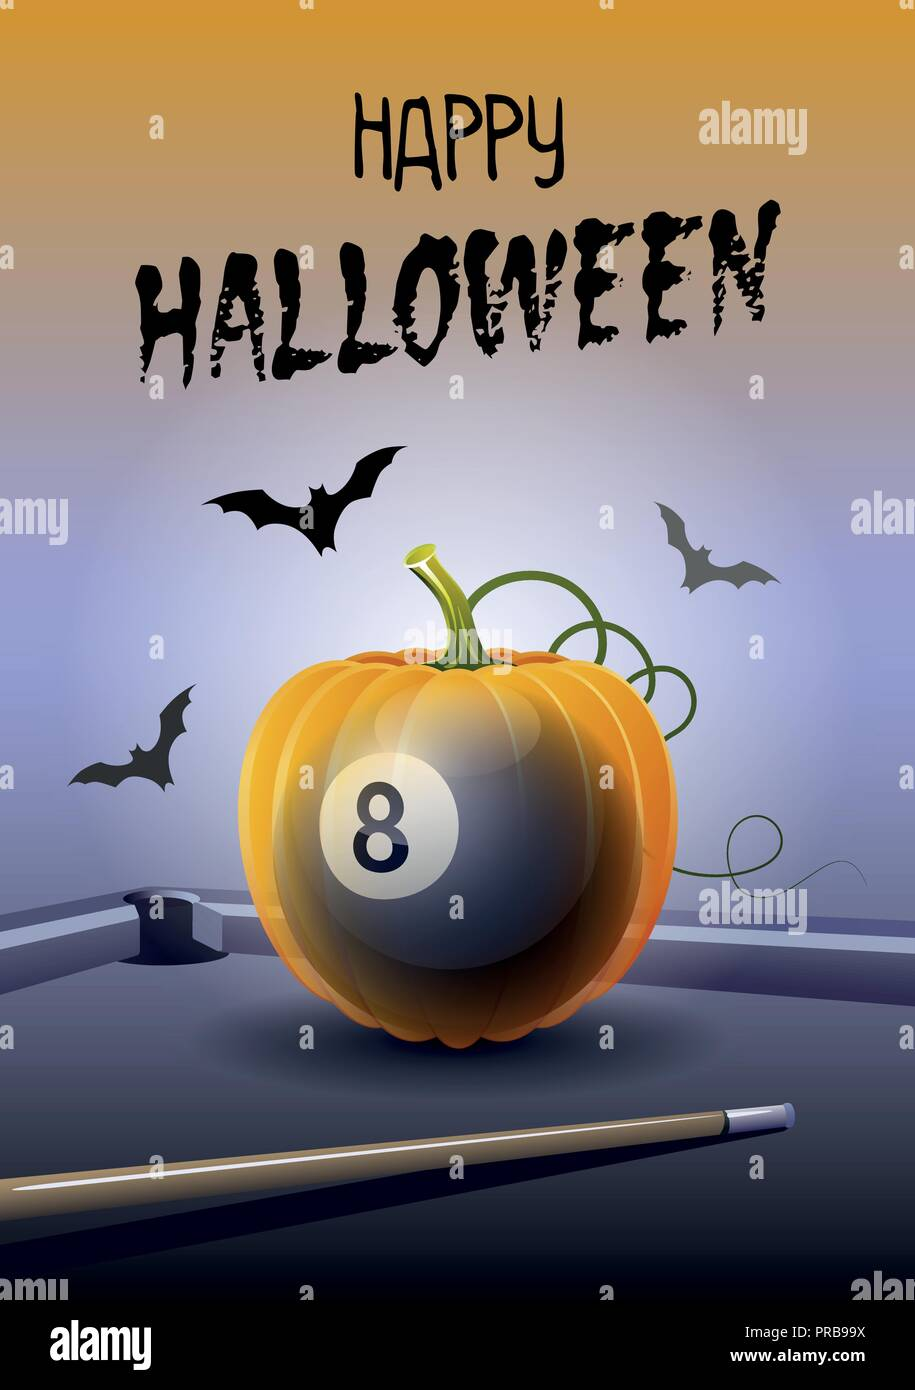 Happy Halloween. Sports greeting card. Realistic billiard ball in the shape of a Pumpkin. Vector illustration. - Stock Image